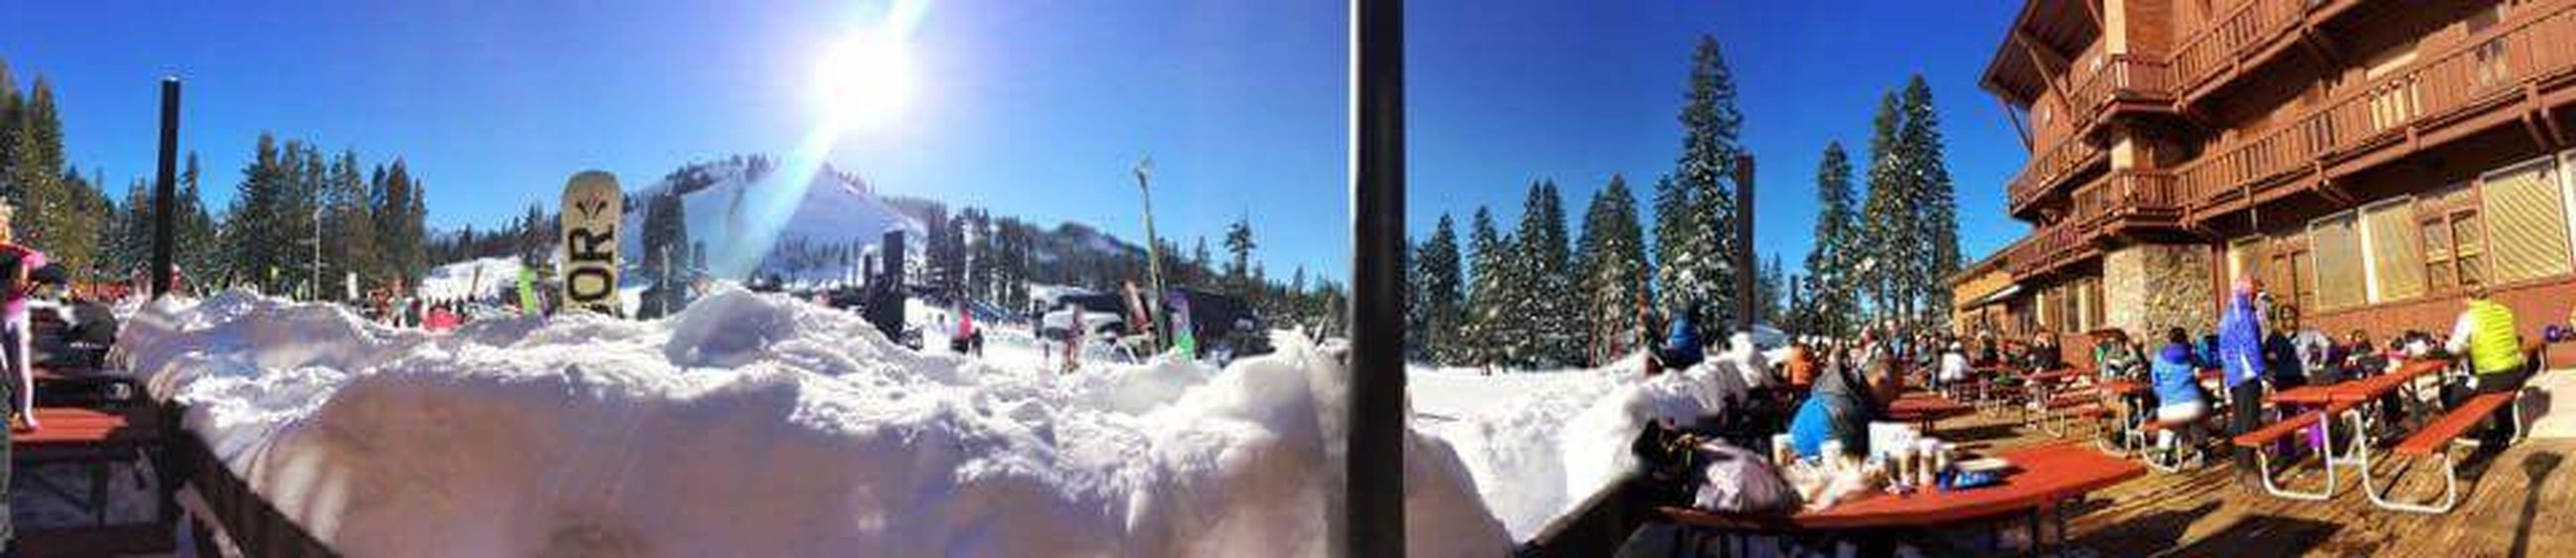 Panoramic Sugarbowl Snow ❄ Snowboarding Friends Hey :)